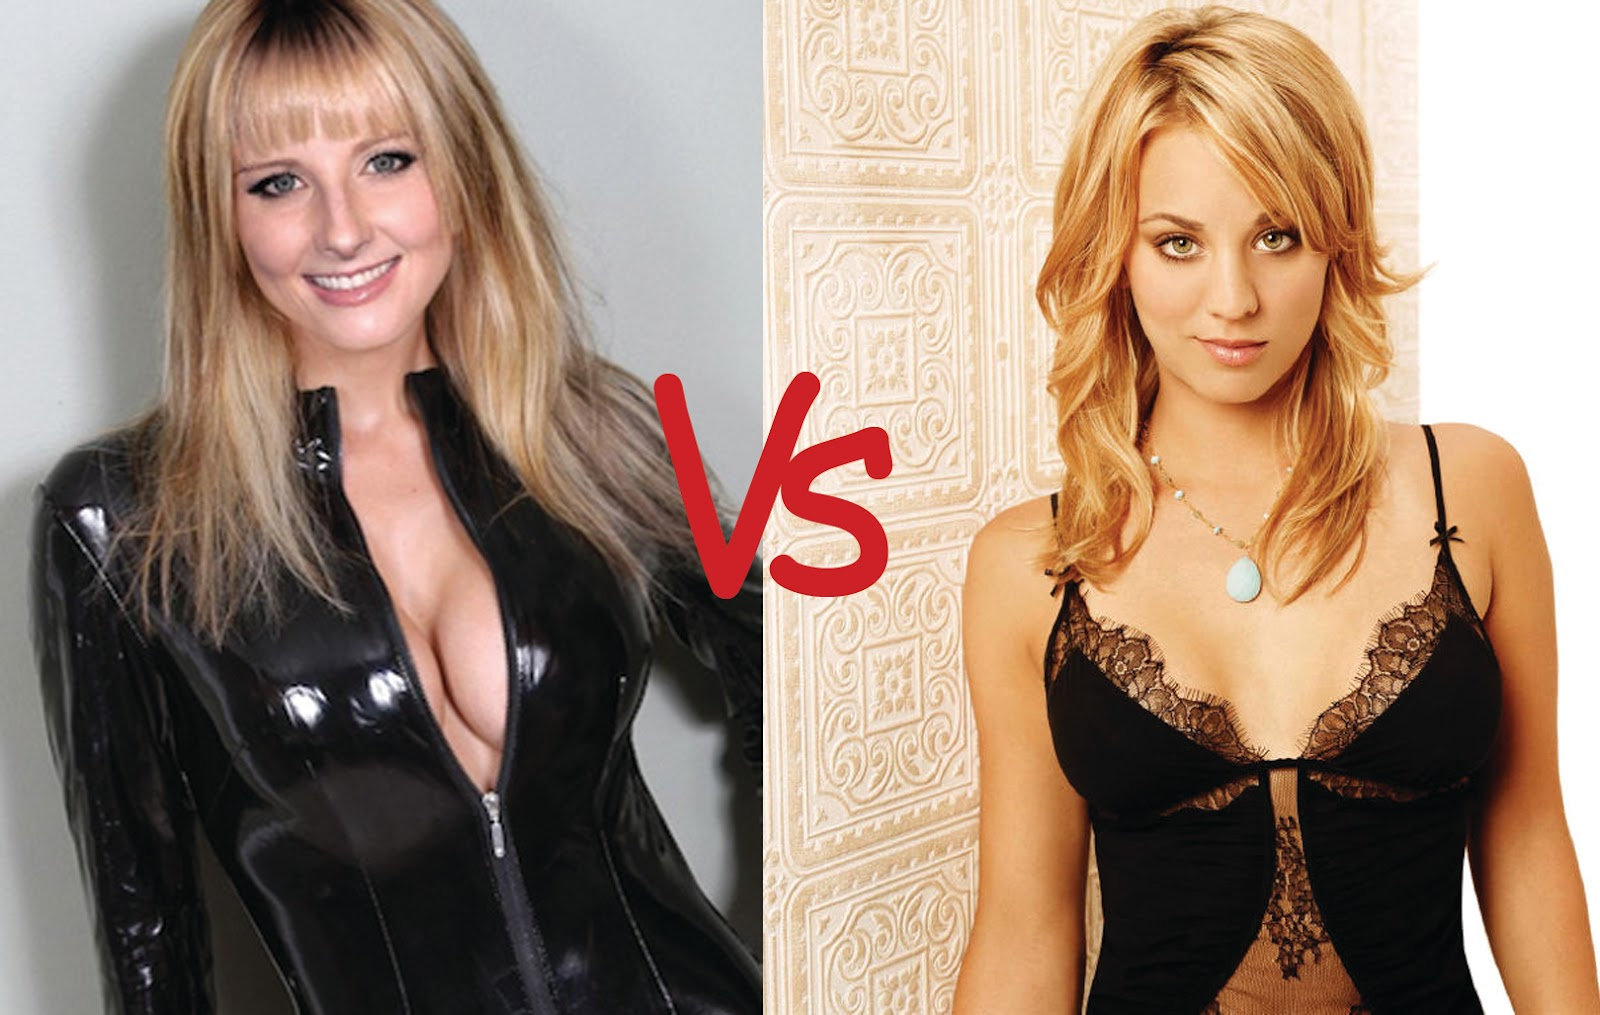 POLL: Who is hotter Kaley Cuoco (Penny) or Melissa Rauch